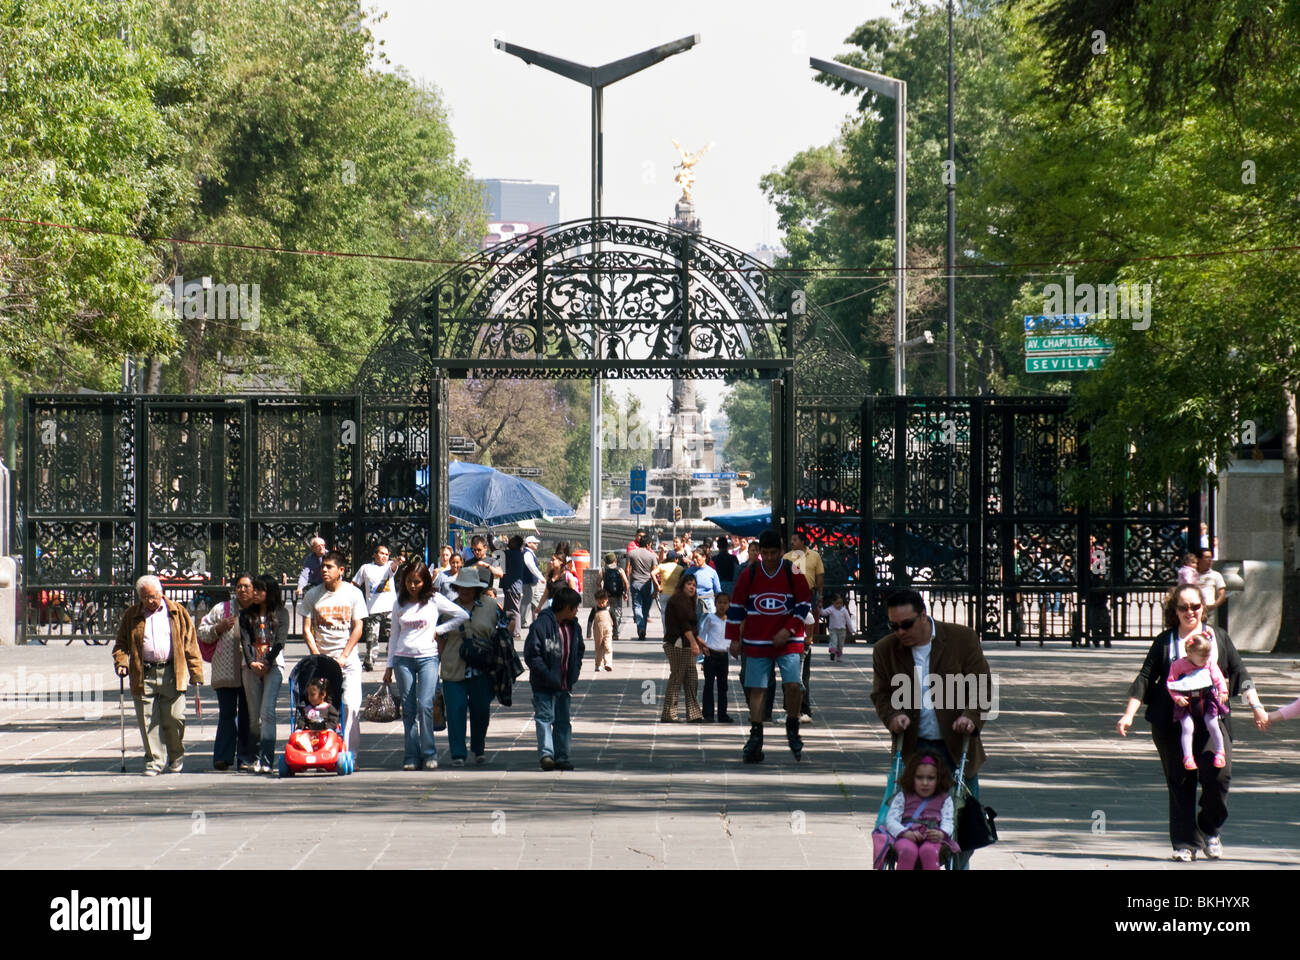 diverse multi ethnic crowd of people entering Chapultepec Park on a sunny Sunday in Mexico City - Stock Image